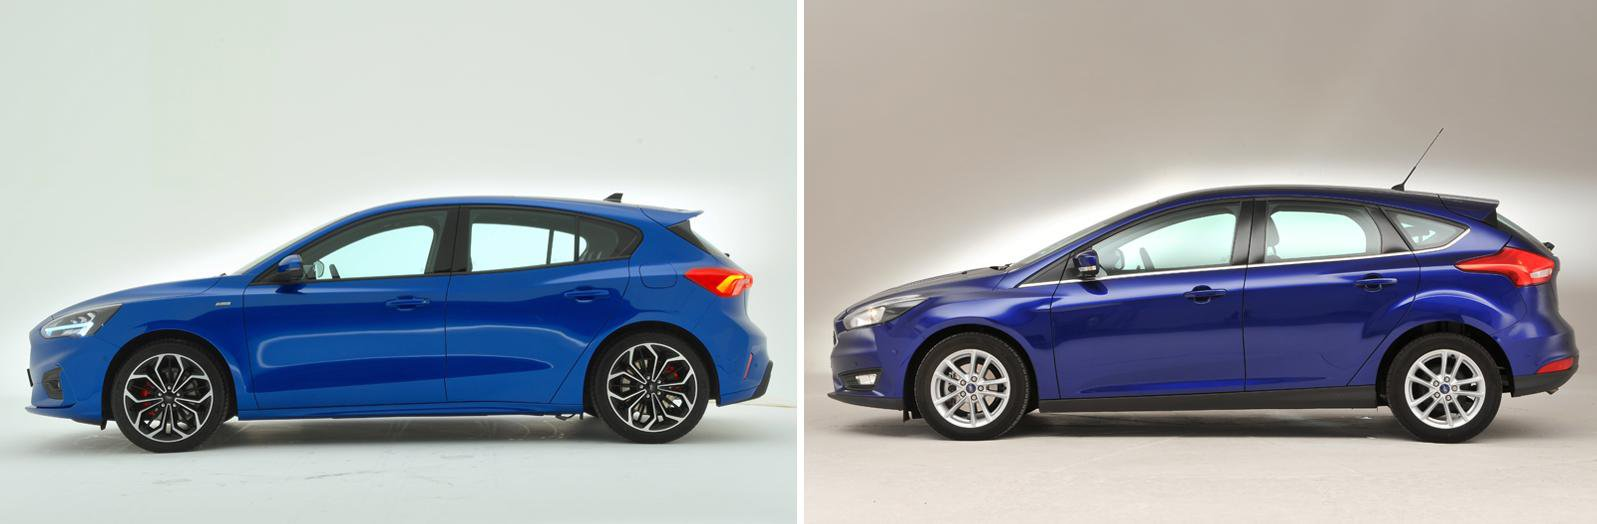 Ford Focus: new vs old compared